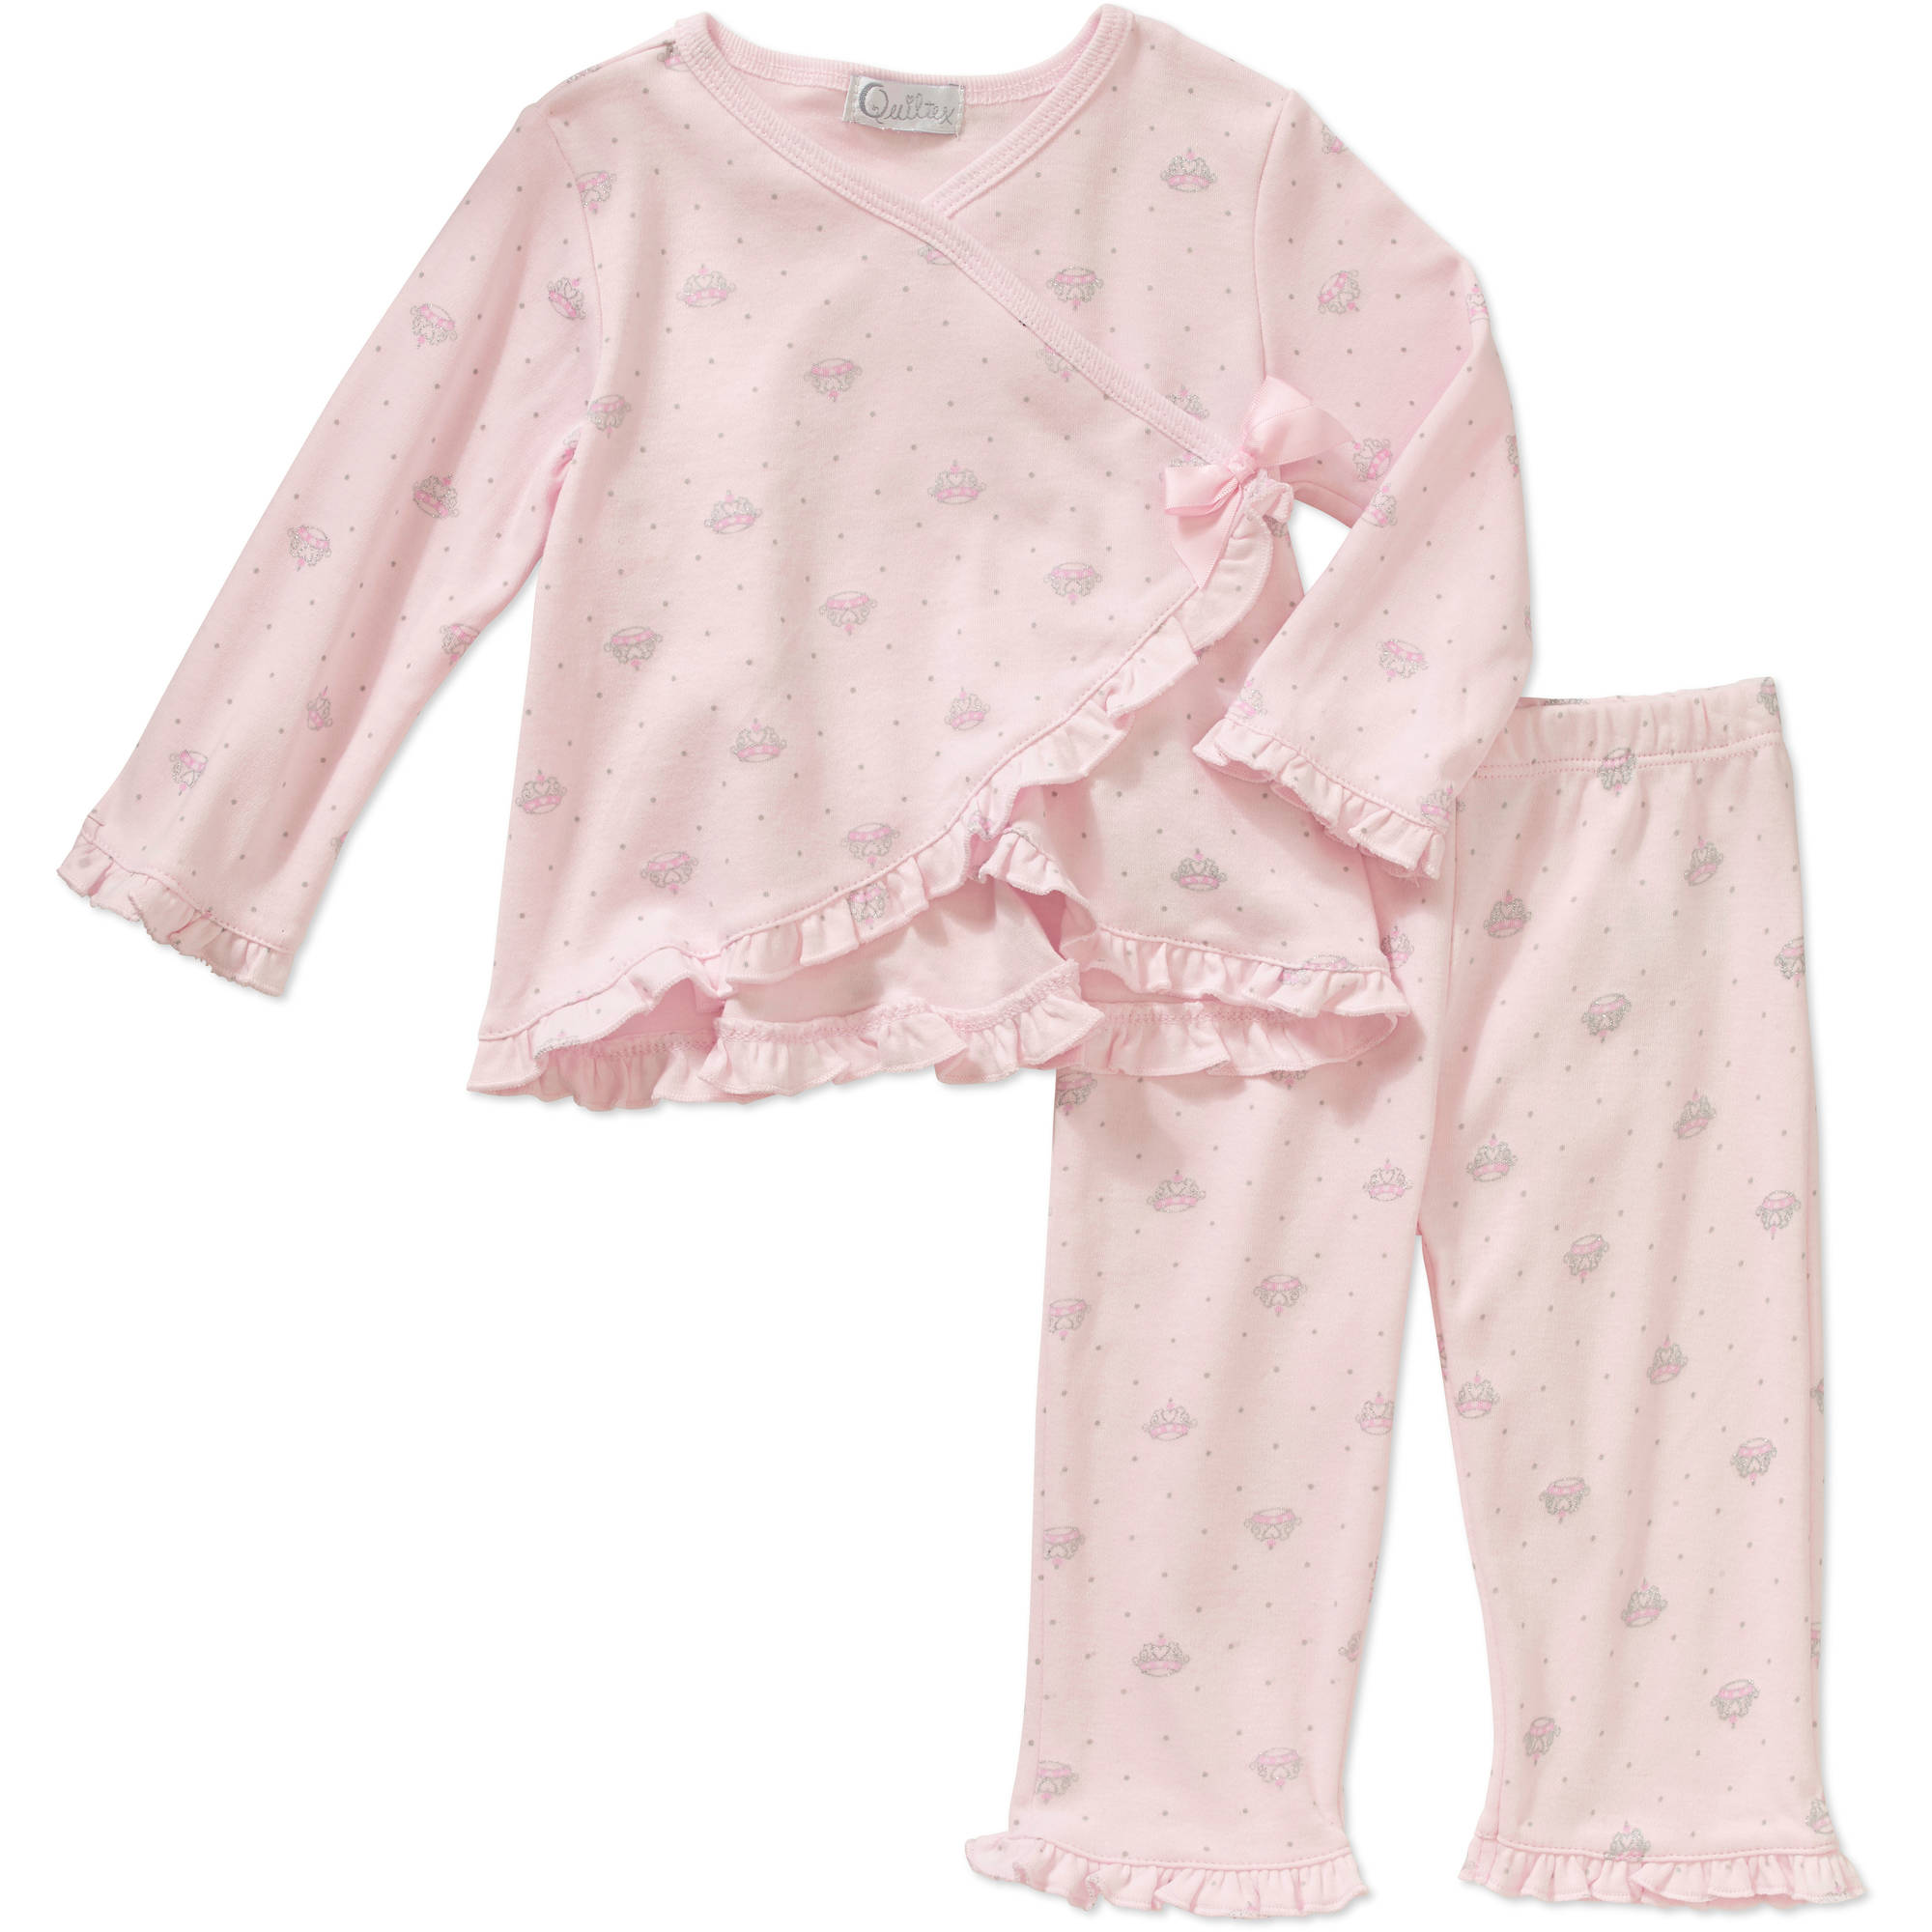 Quiltex Newborn Baby Girl Glitter Crown Ruffle Trim Kimono Top and Pant Set